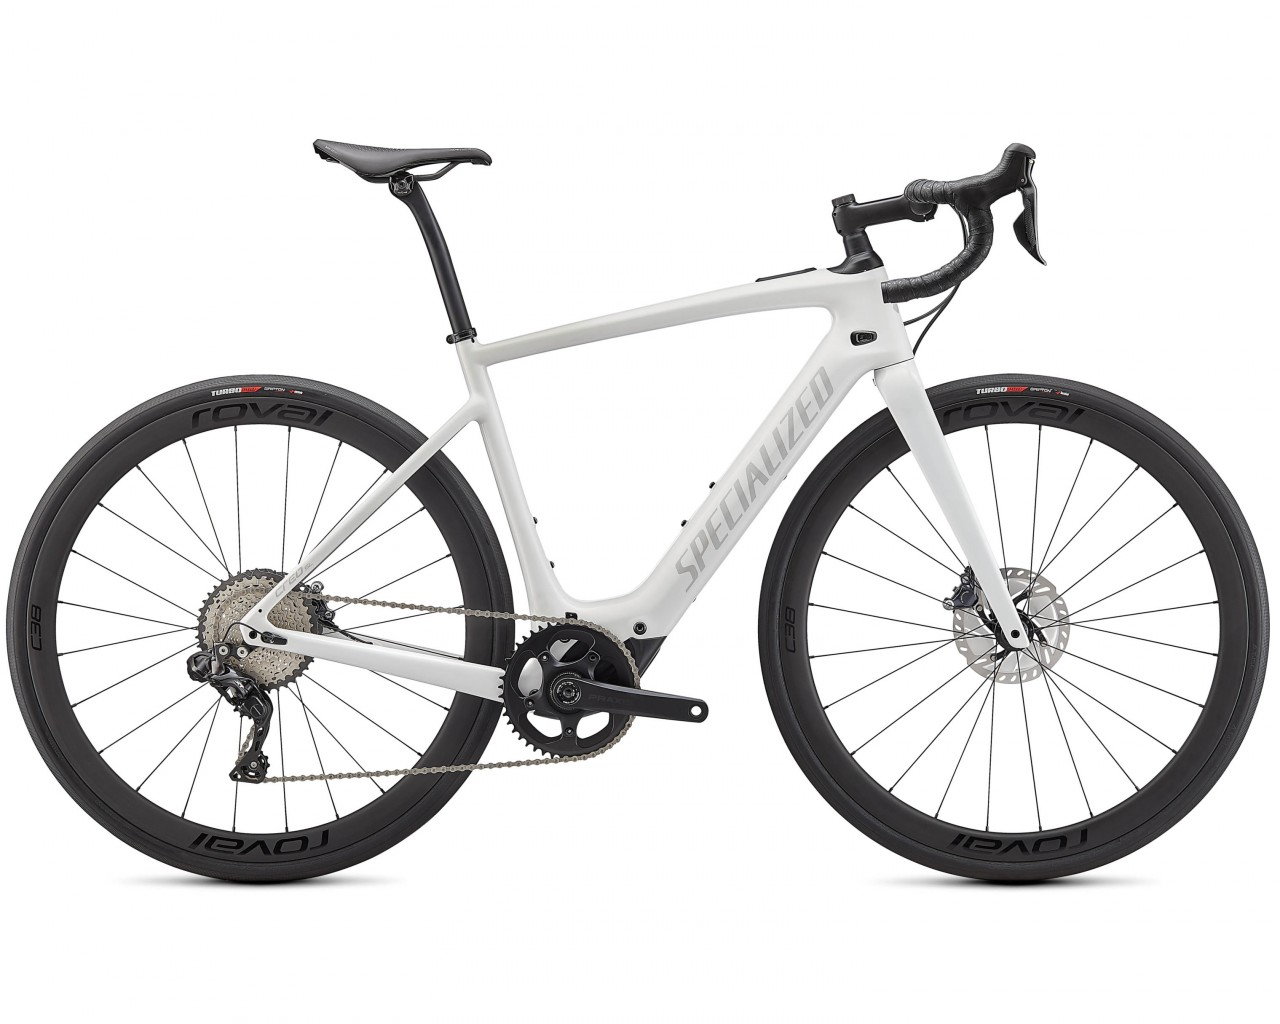 Specialized Creo SL Expert - Pedelec Carbon Road Bike 2021 | abalone-spectraflair